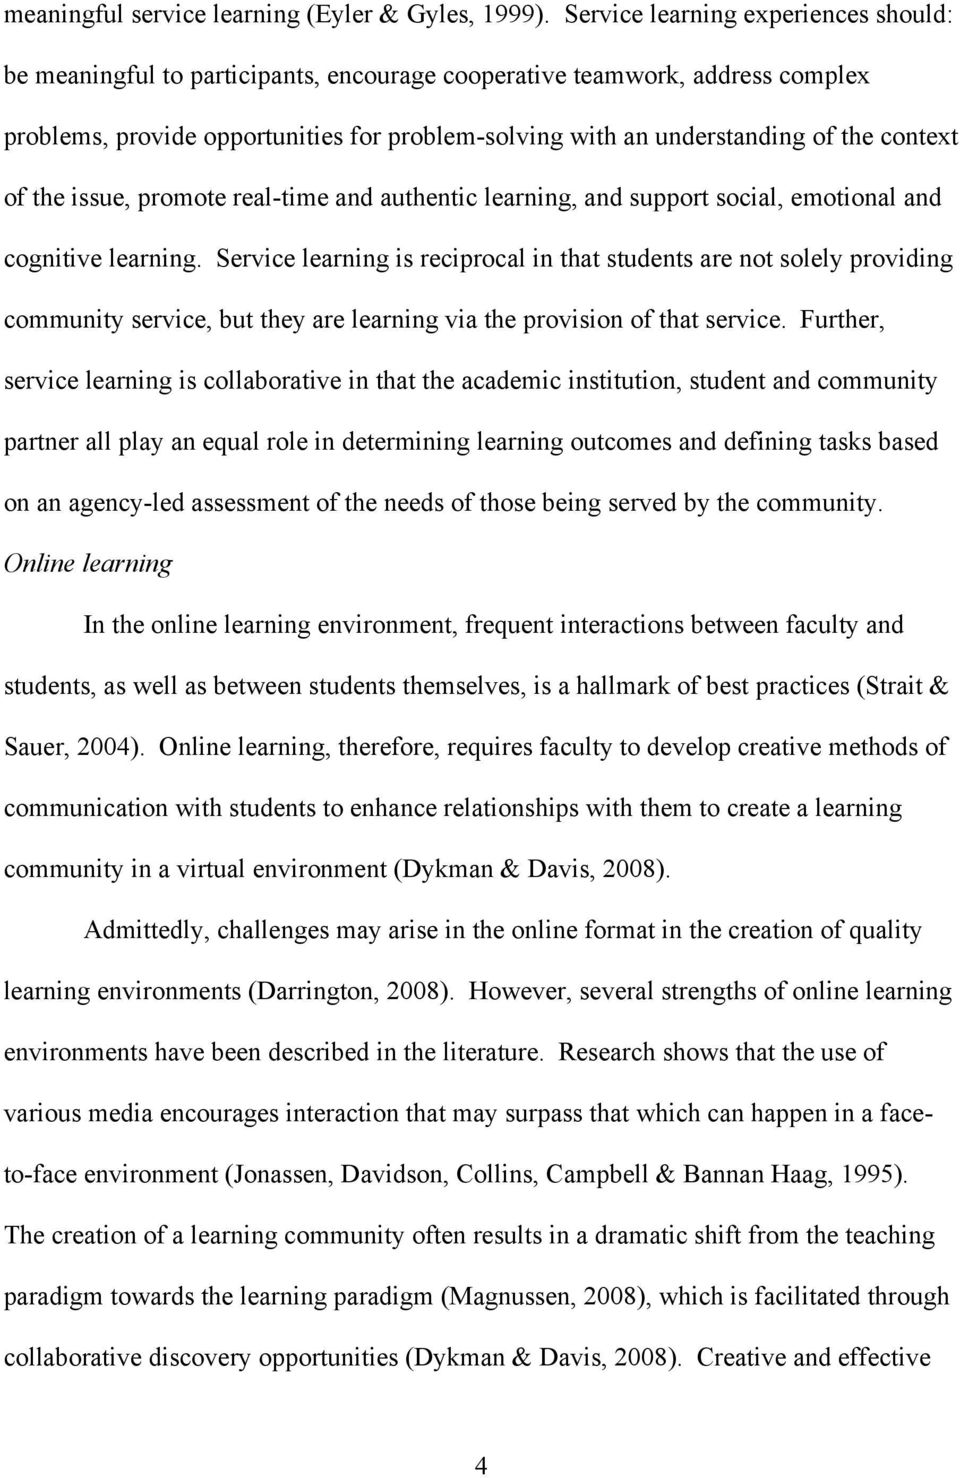 context of the issue, promote real-time and authentic learning, and support social, emotional and cognitive learning.